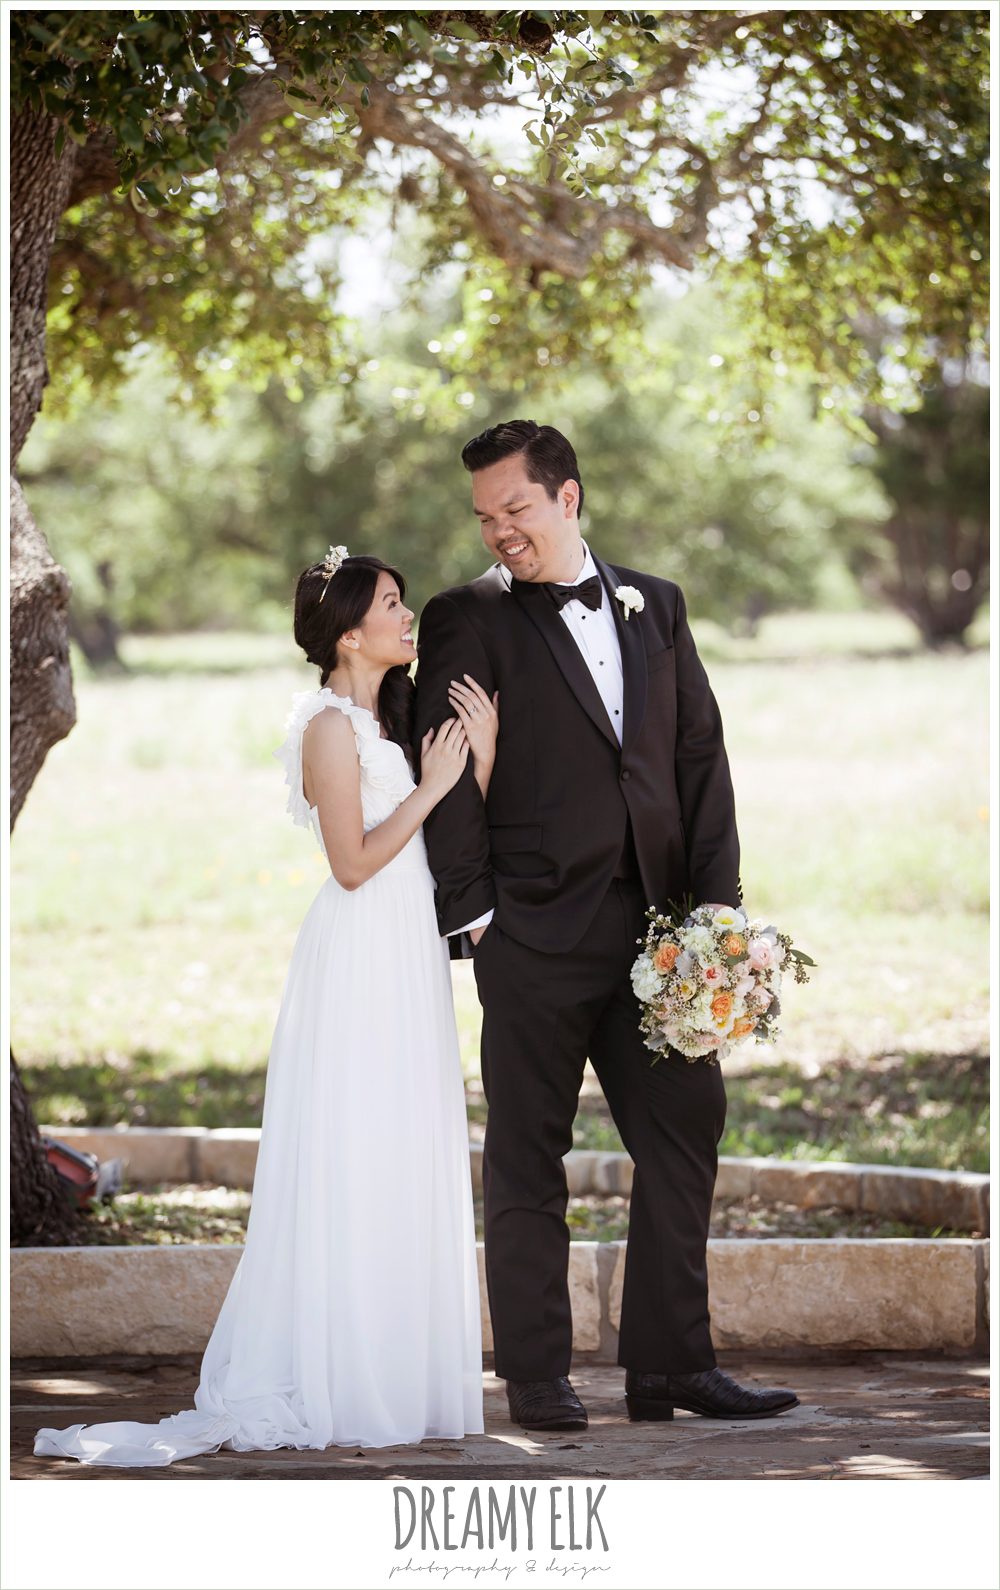 bride and groom, chiffon wedding dress with ruffle sleeve, wedding hair side swept, pink orange and yellow bouquet, wild bunches florist, la hacienda, dripping springs, texas {dreamy elk photography and design} photo